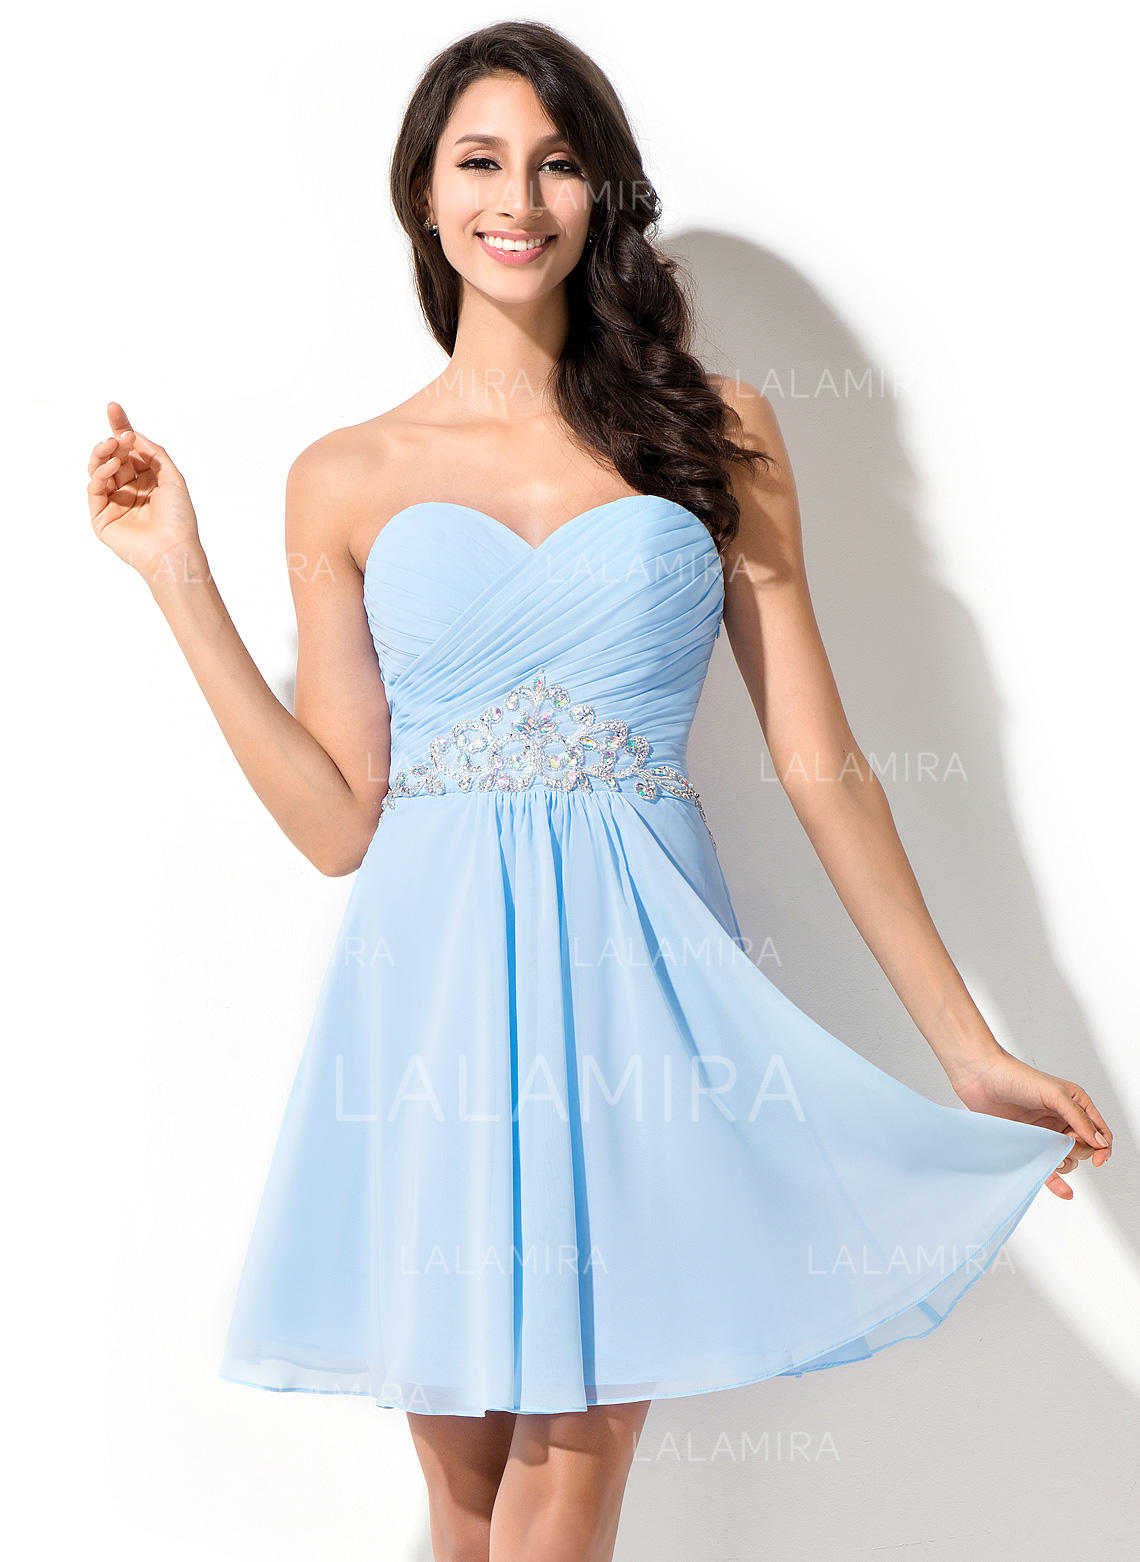 87d27409881 Glamorous Chiffon Homecoming Dresses A-Line/Princess Short/Mini Sweetheart  Sleeveless (022214026. Loading zoom